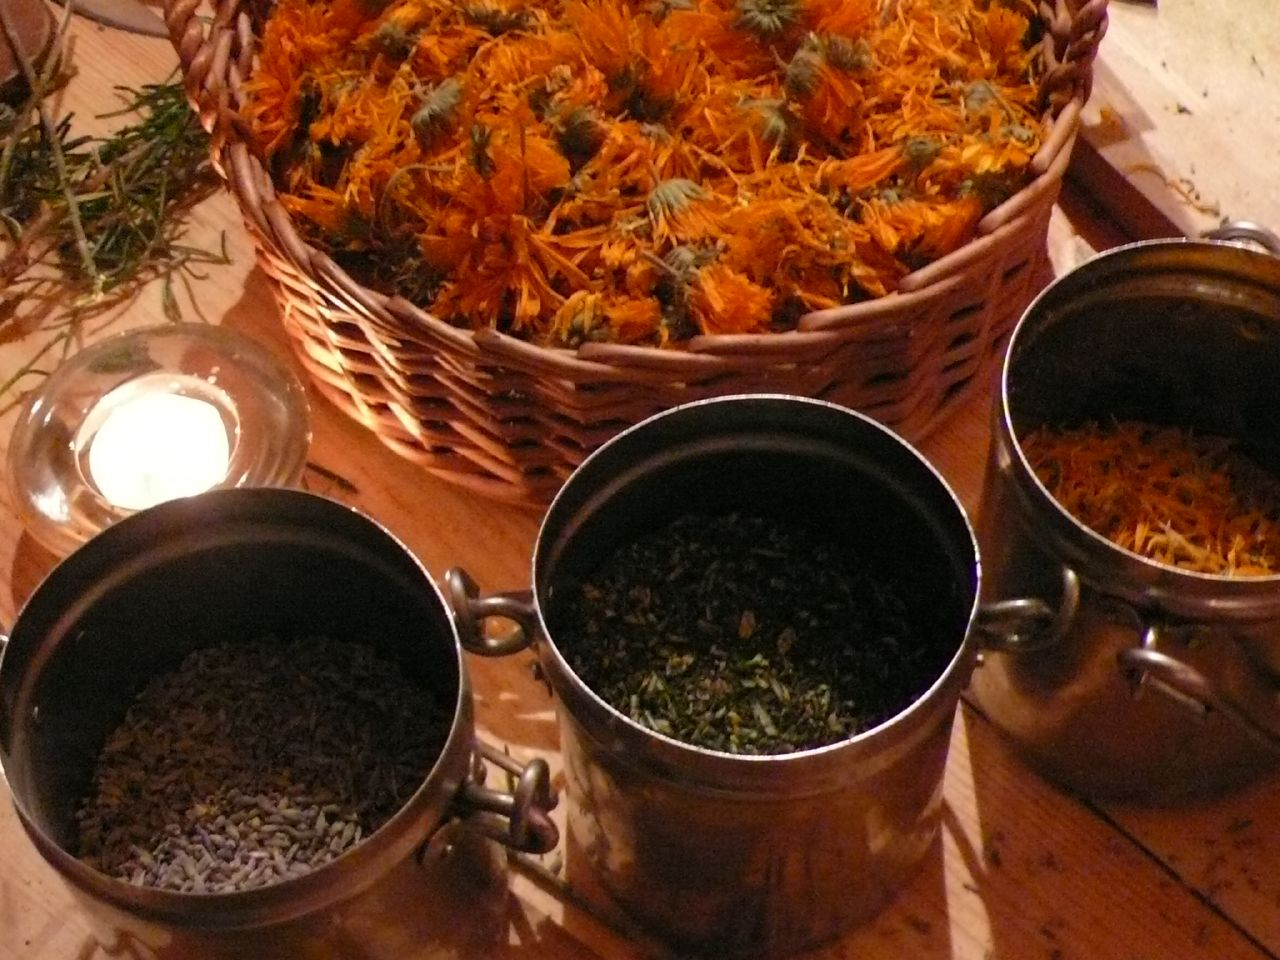 Centre Approves Ayurvedic Drug – But Its Science is Missing